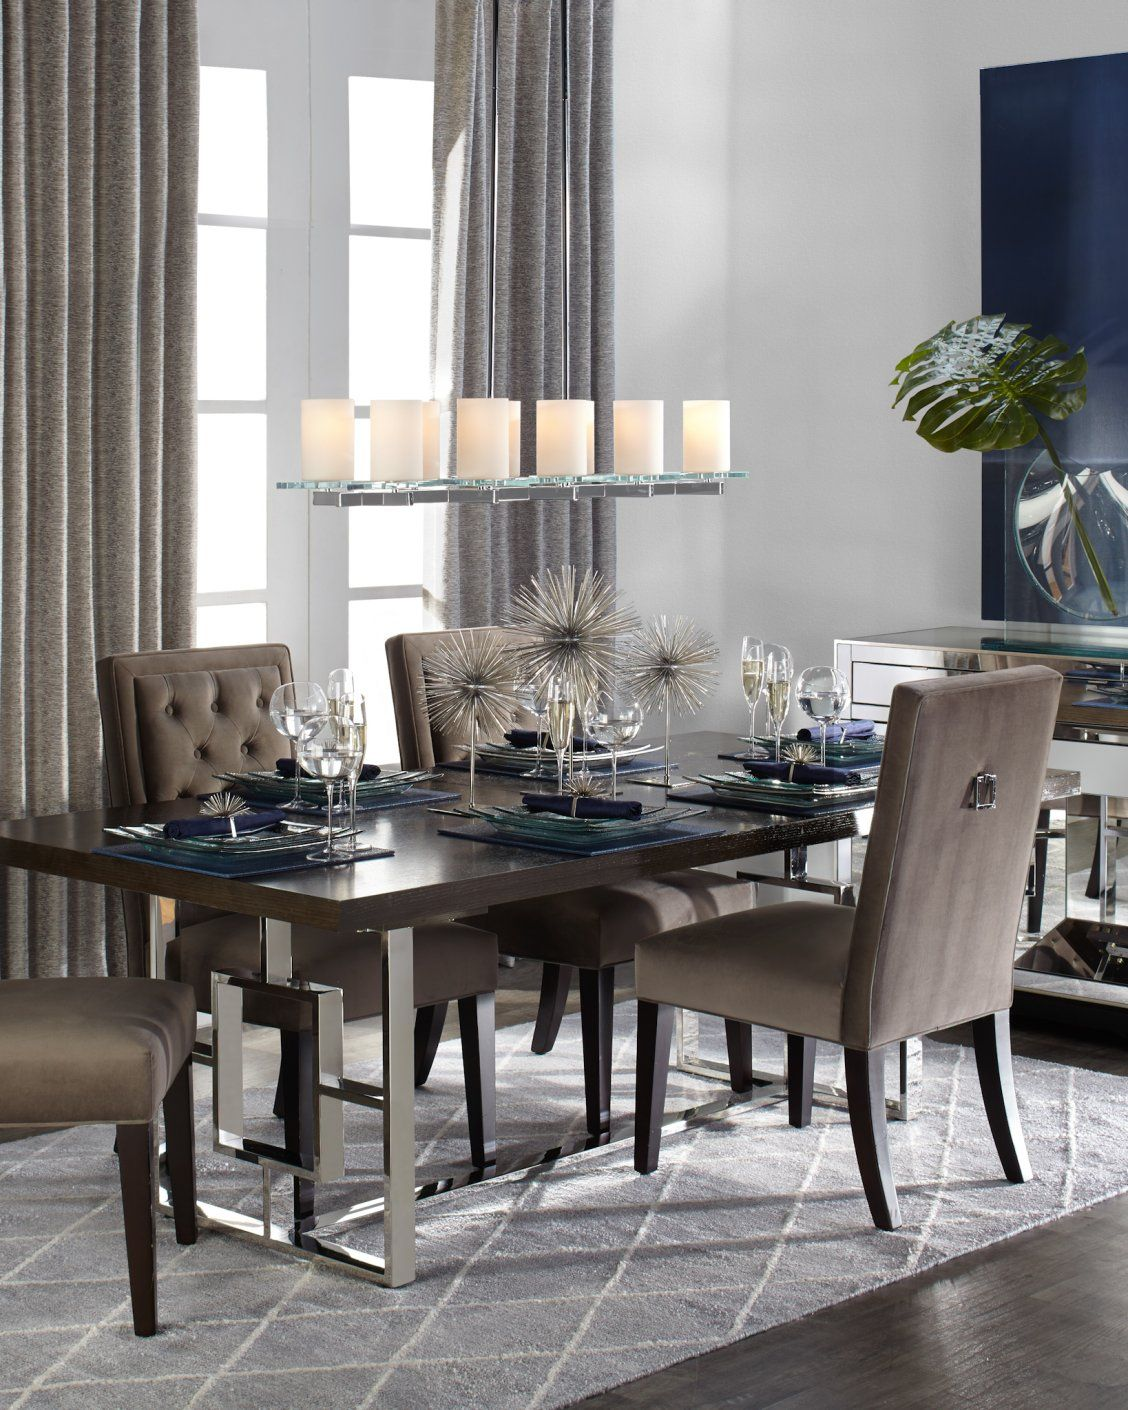 Get Inspired By Spring Favorites Like Our Modern Architectural Rylan Extending Dining Table Add Texture And Glam To Any E With The Scoppio Starburst